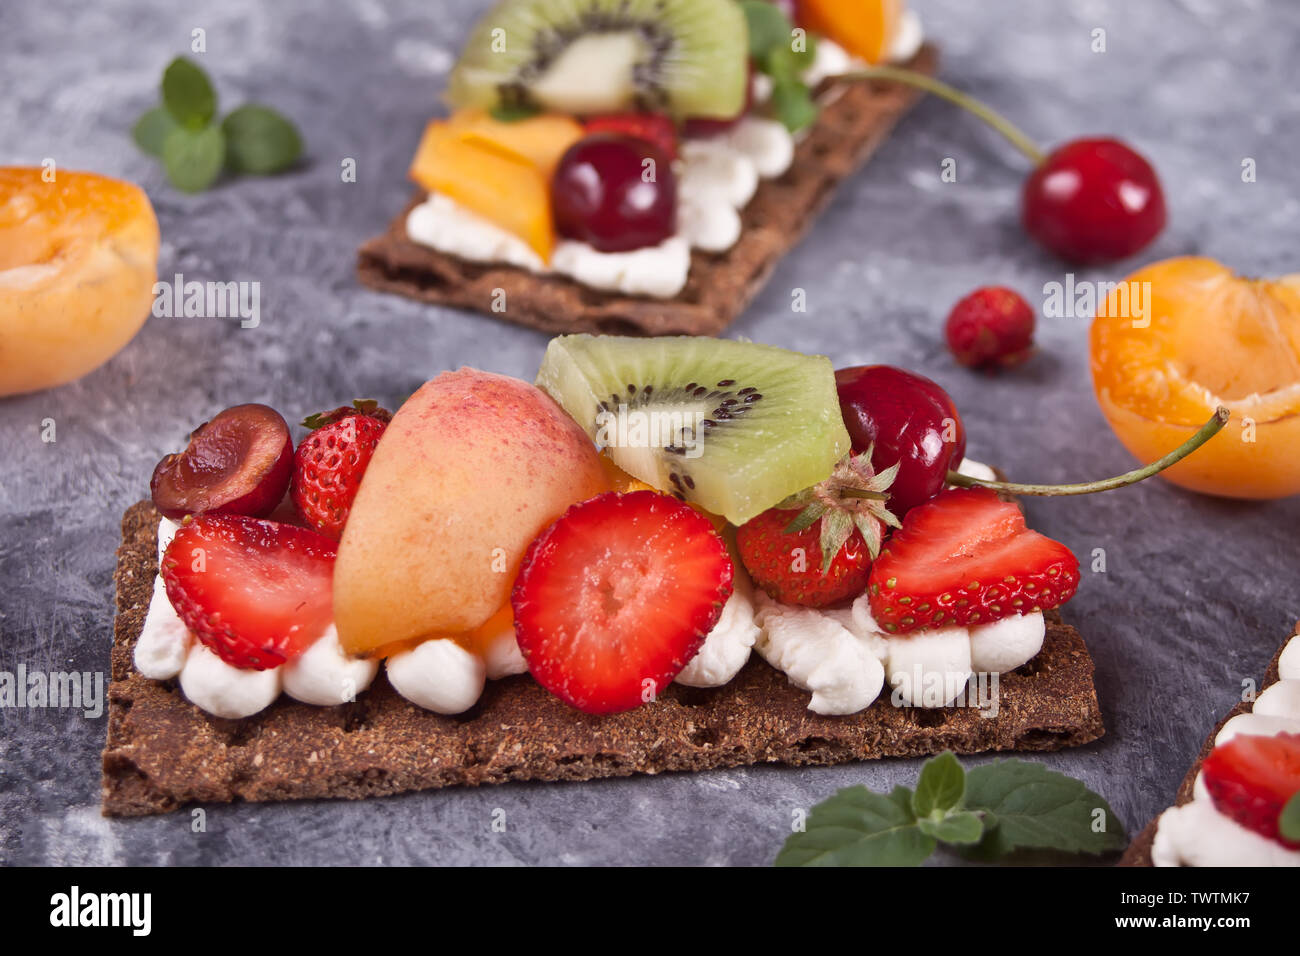 Crisp fitness health bread with creme cheese, fruit and berries on the gray concrete background. - Stock Image